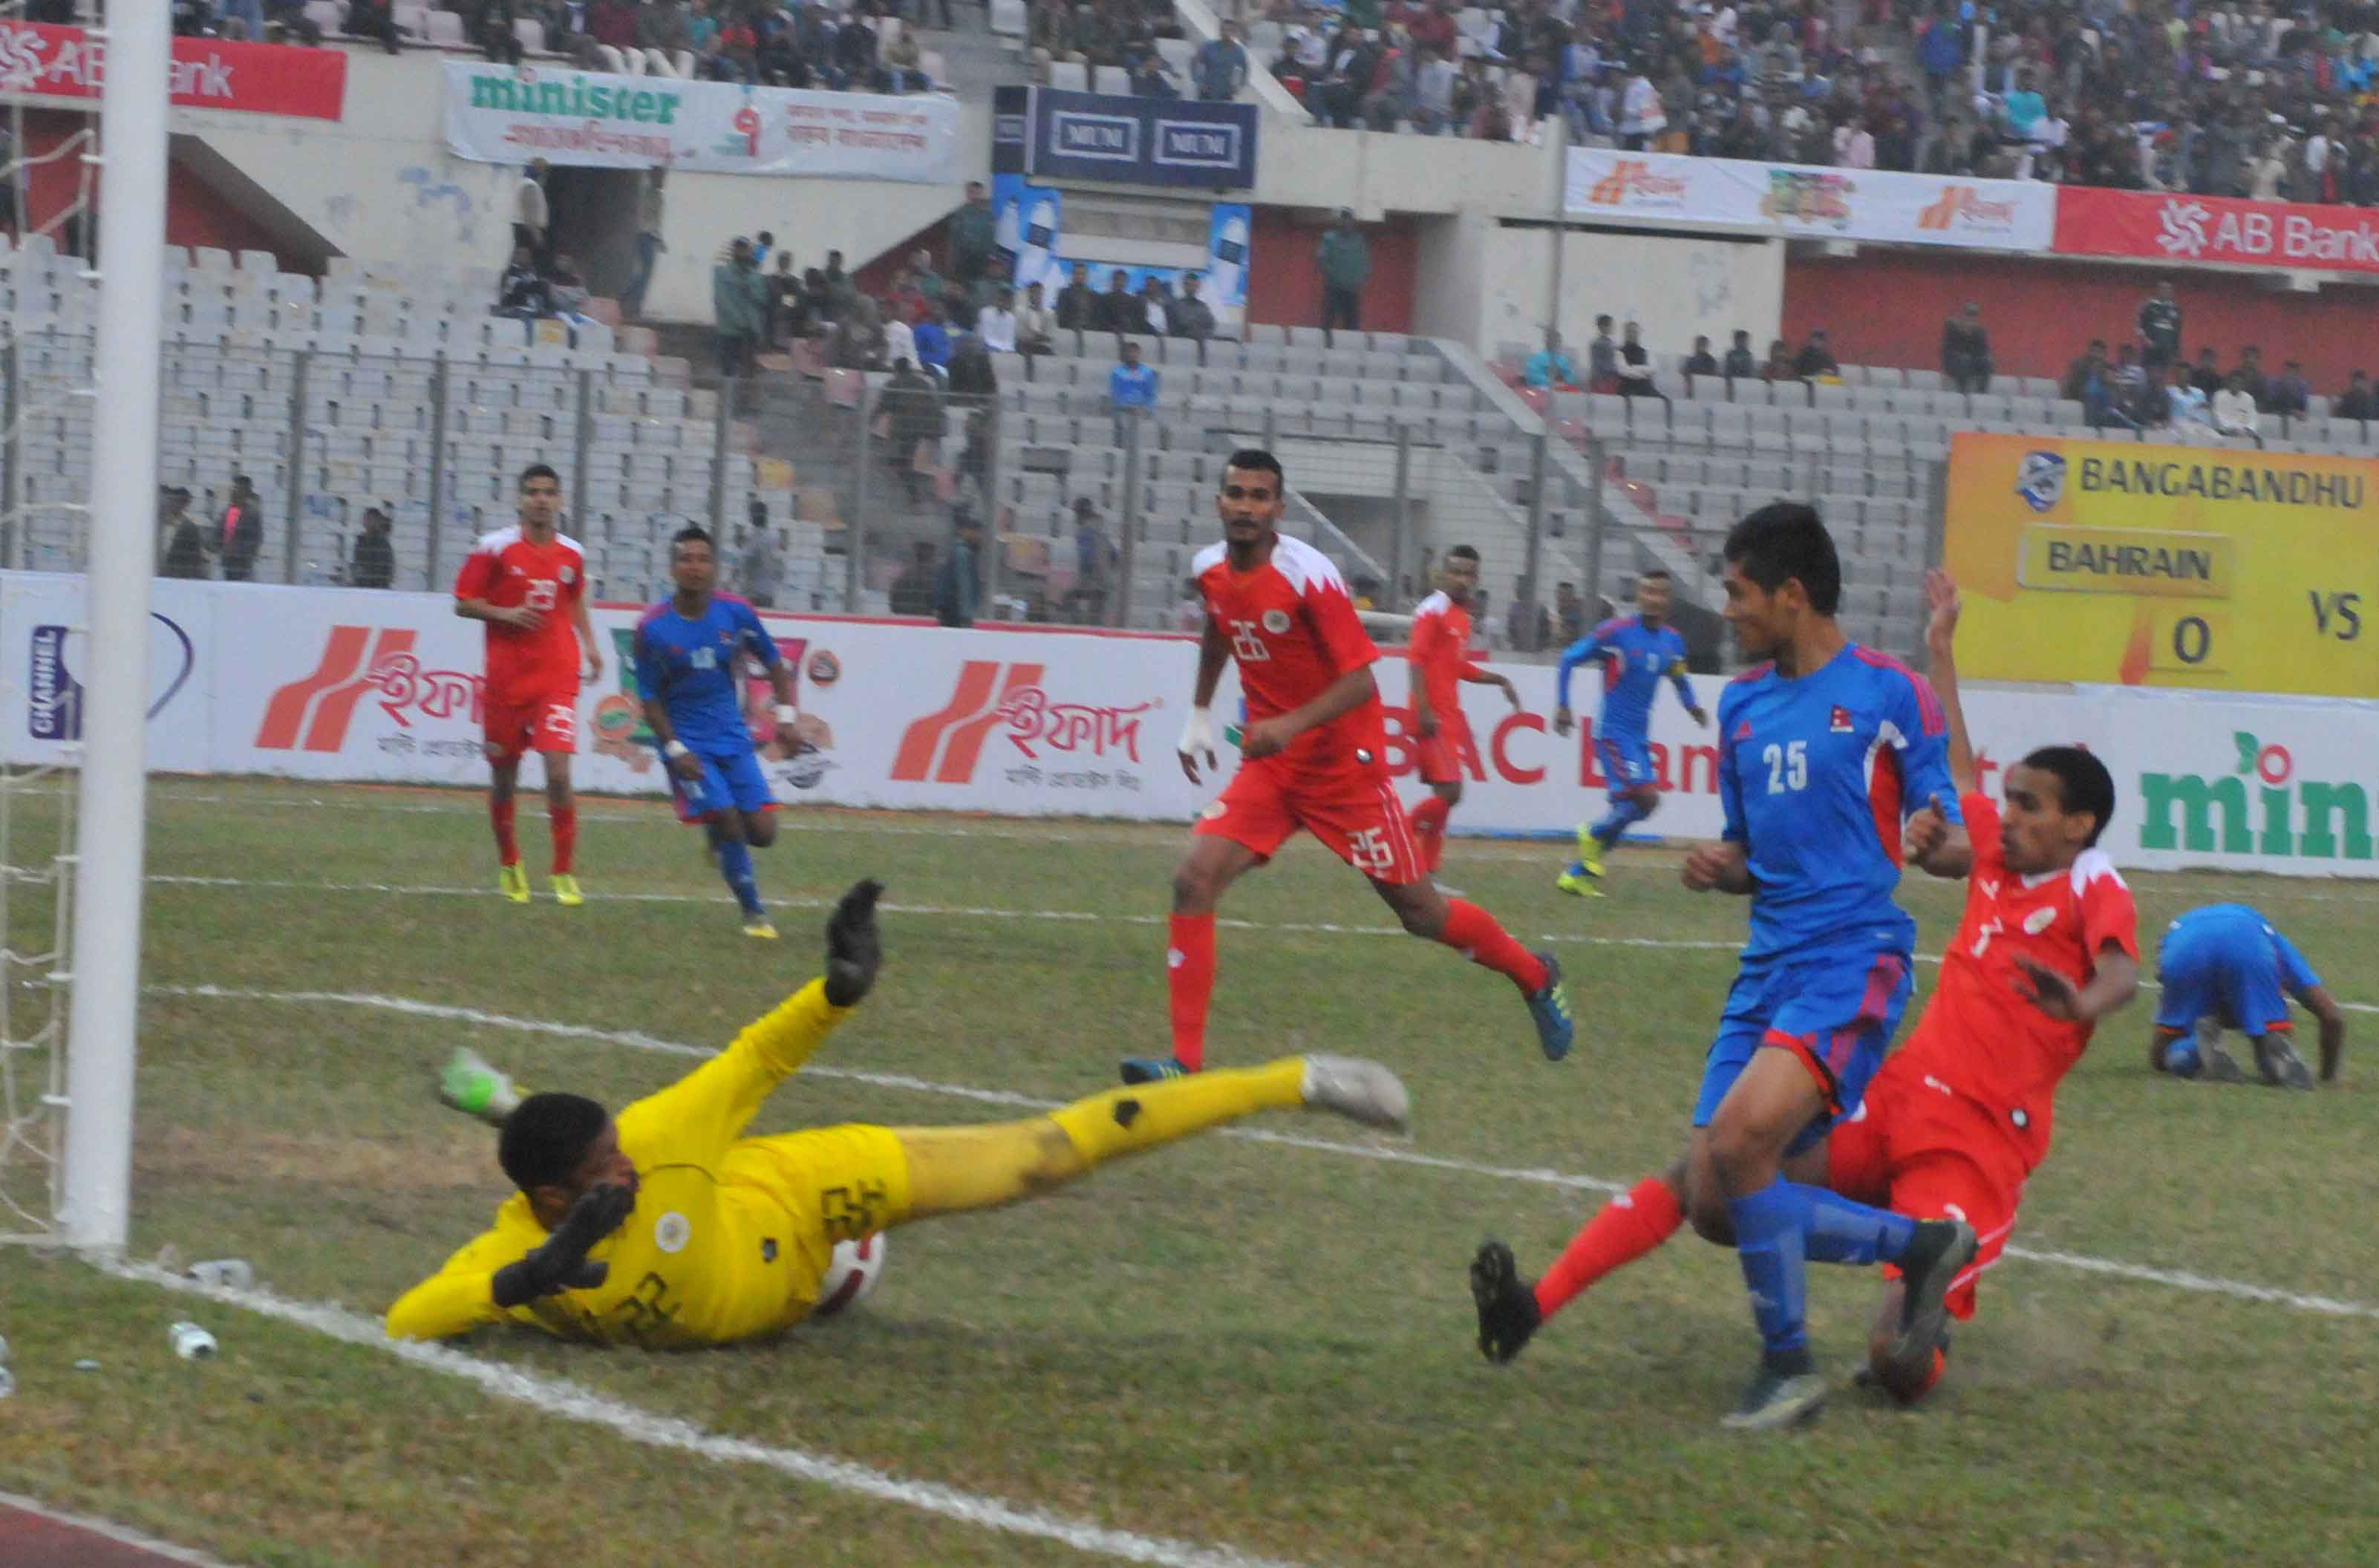 Nepal(Blue)  Vs  Bahrain(Red)Final Match i